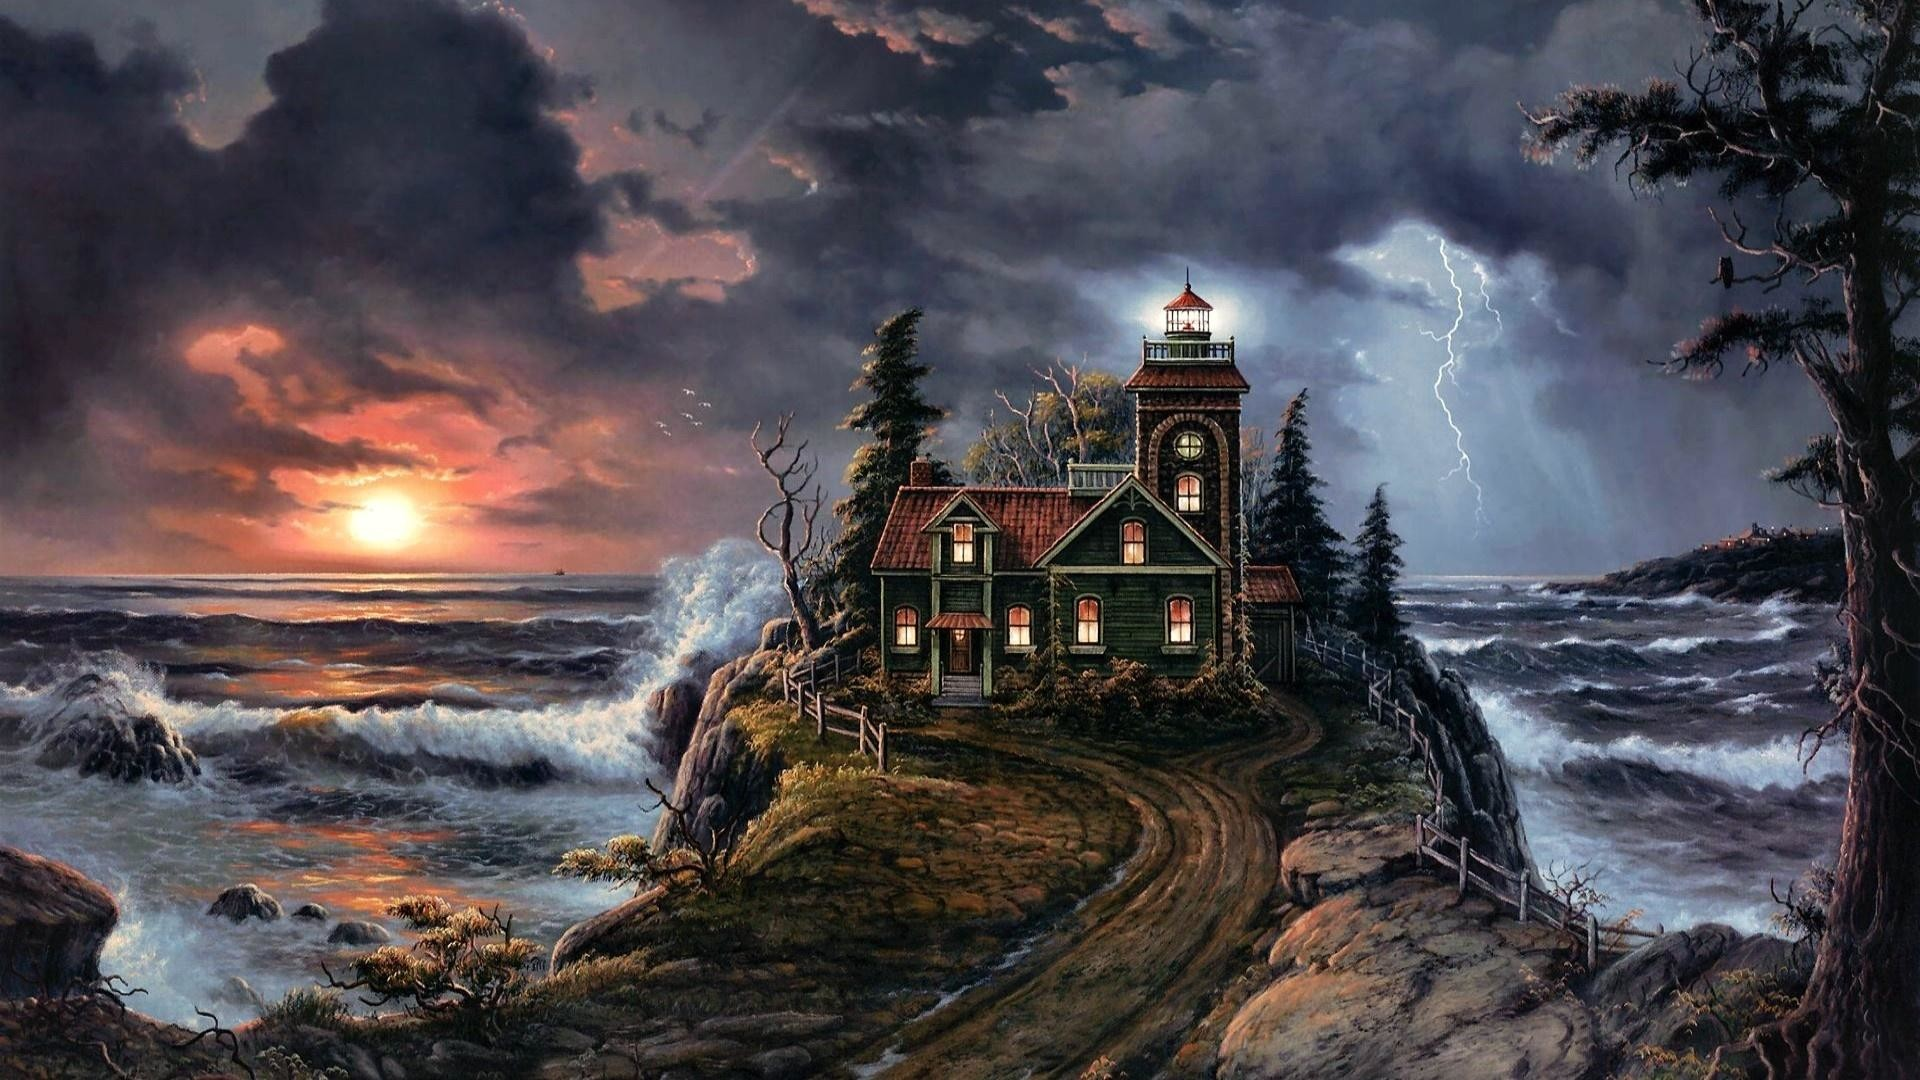 lighthouse paintings | HD Stormy Lighthouse Oil Painting Wallpaper